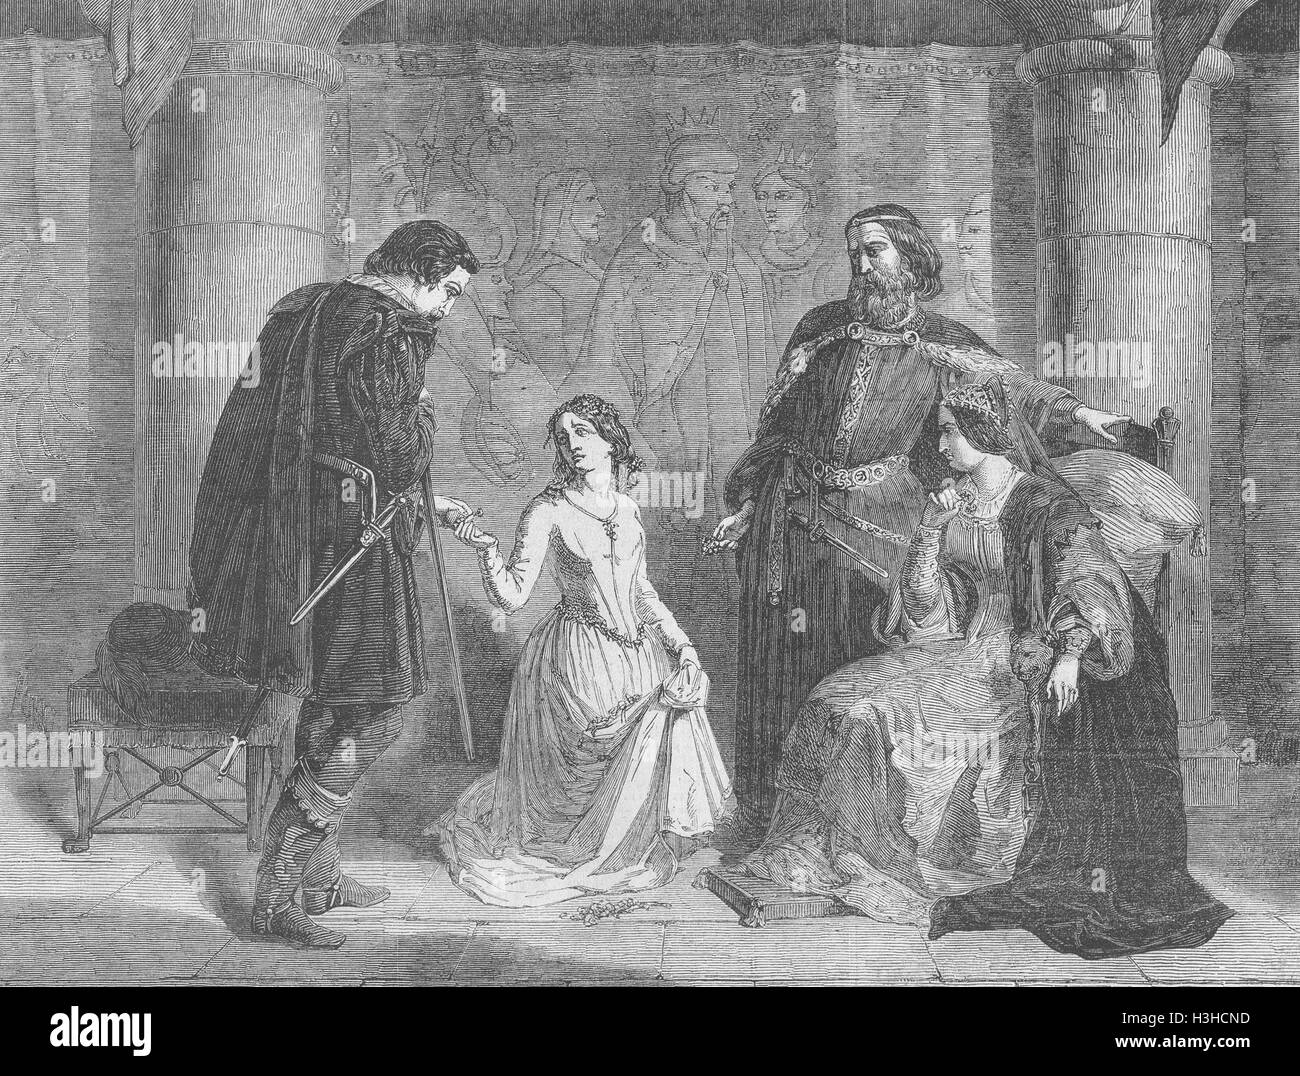 SHAKESPEARE 'Hamlet'-King, Ophelia & Laertes' 1852. Illustrated London News - Stock Image